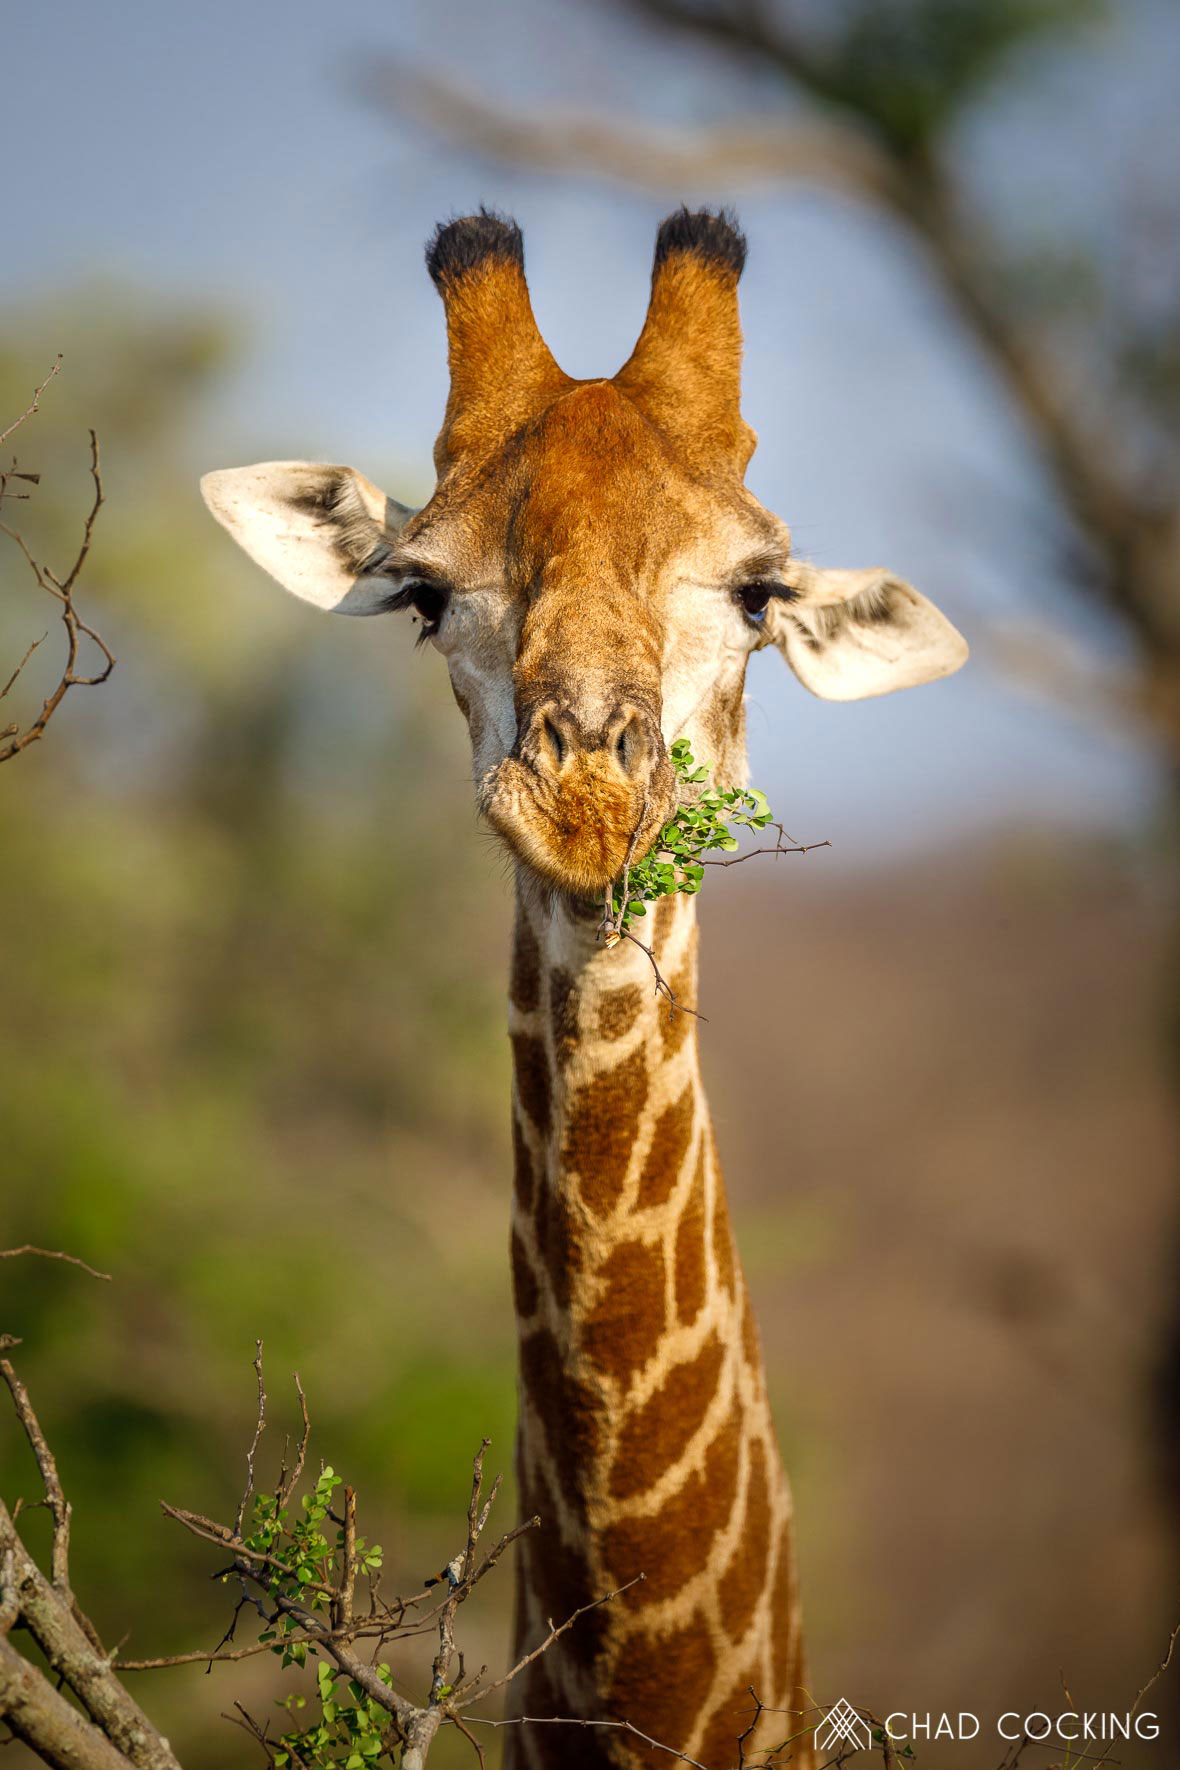 Tanda Tula - Giraffe feeding in the Greater Kruger, South Africa